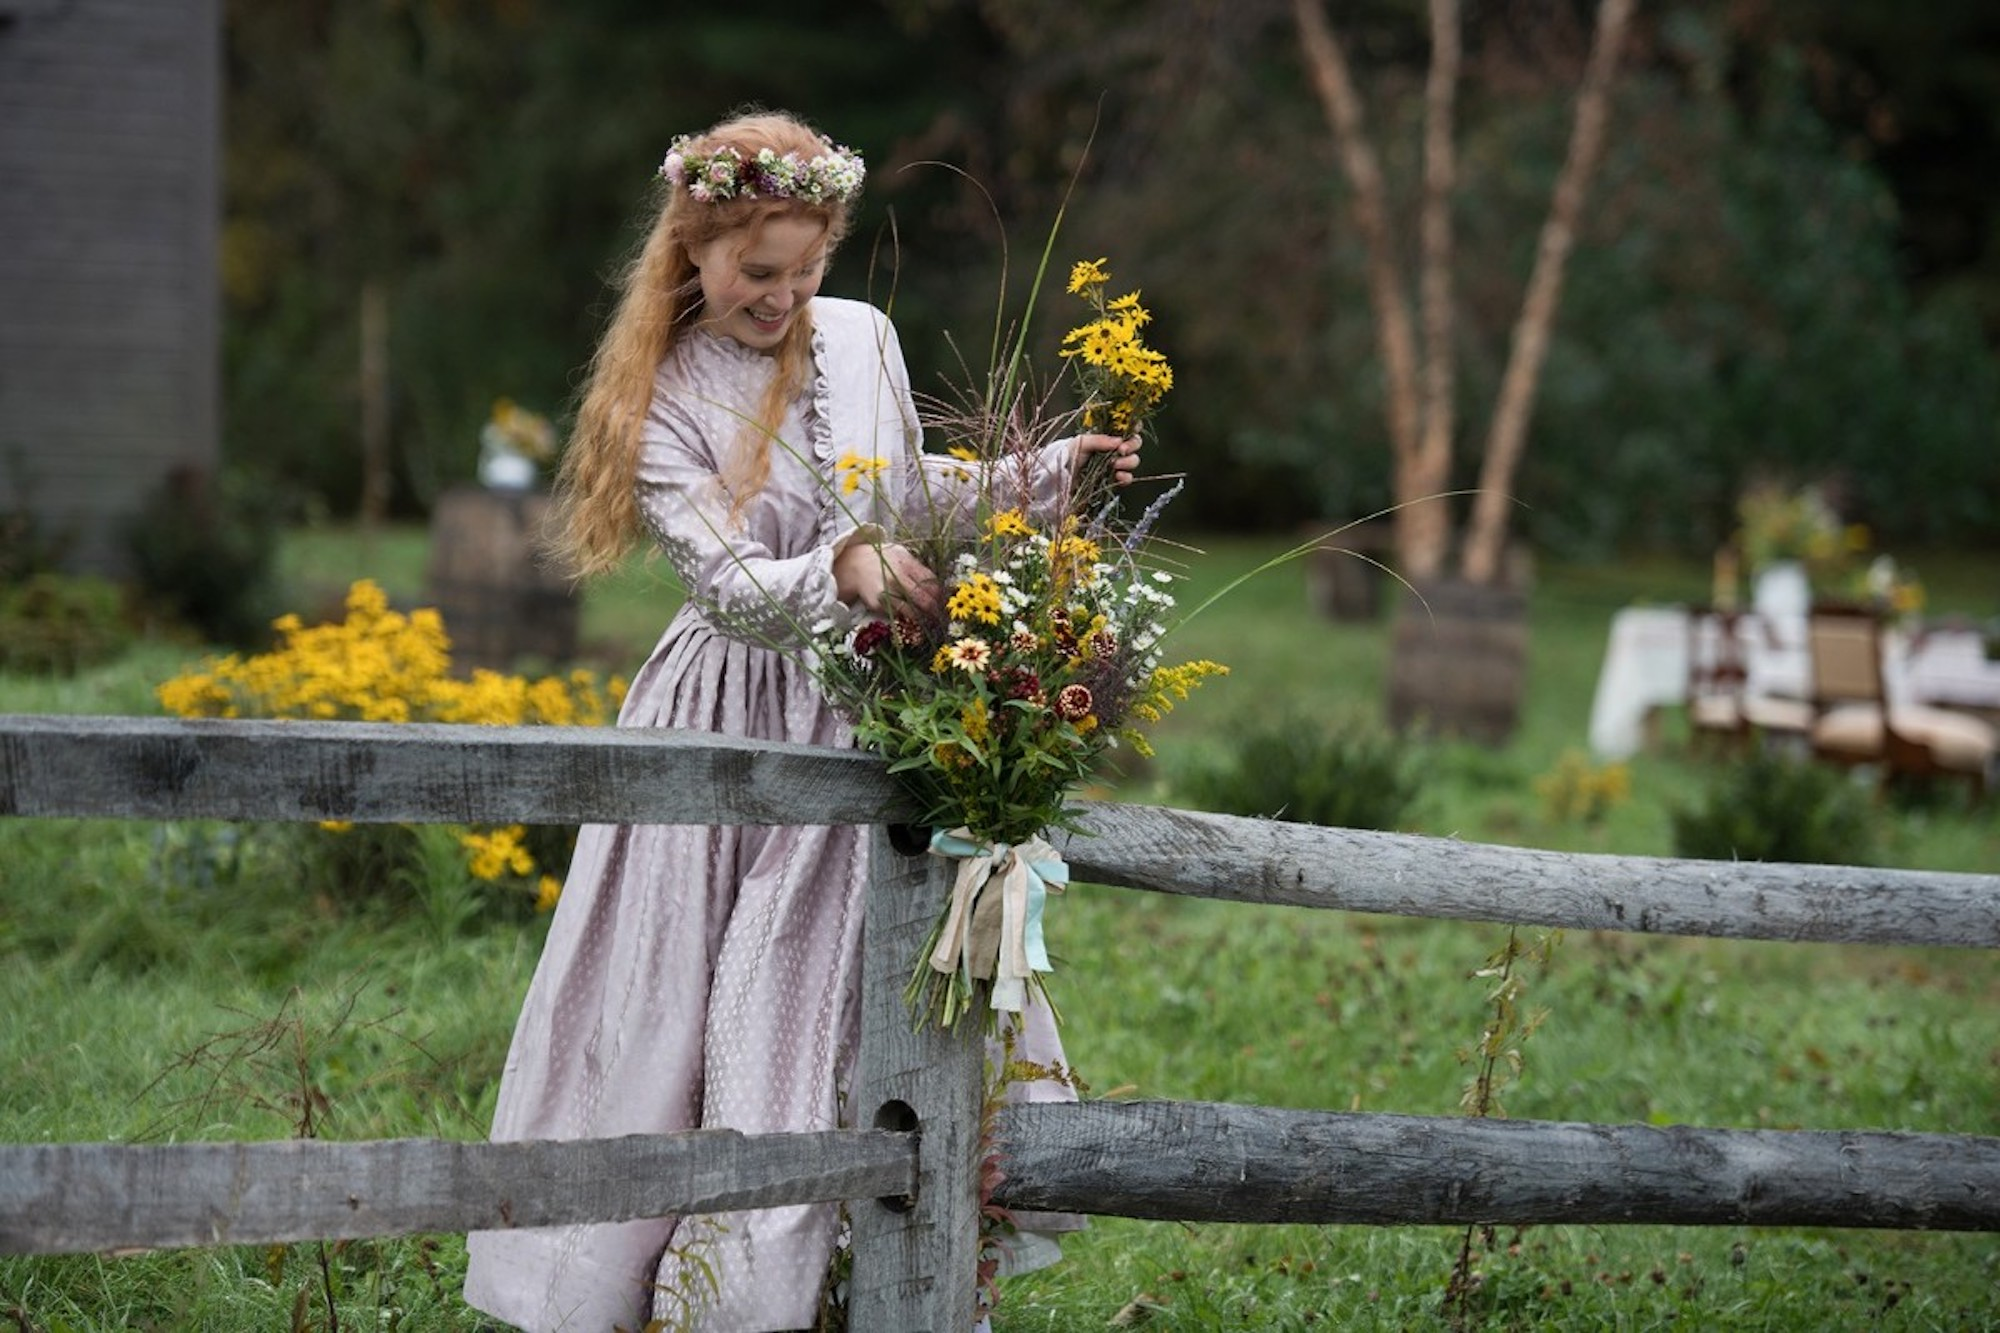 Greta Gerwig's Little Women floral